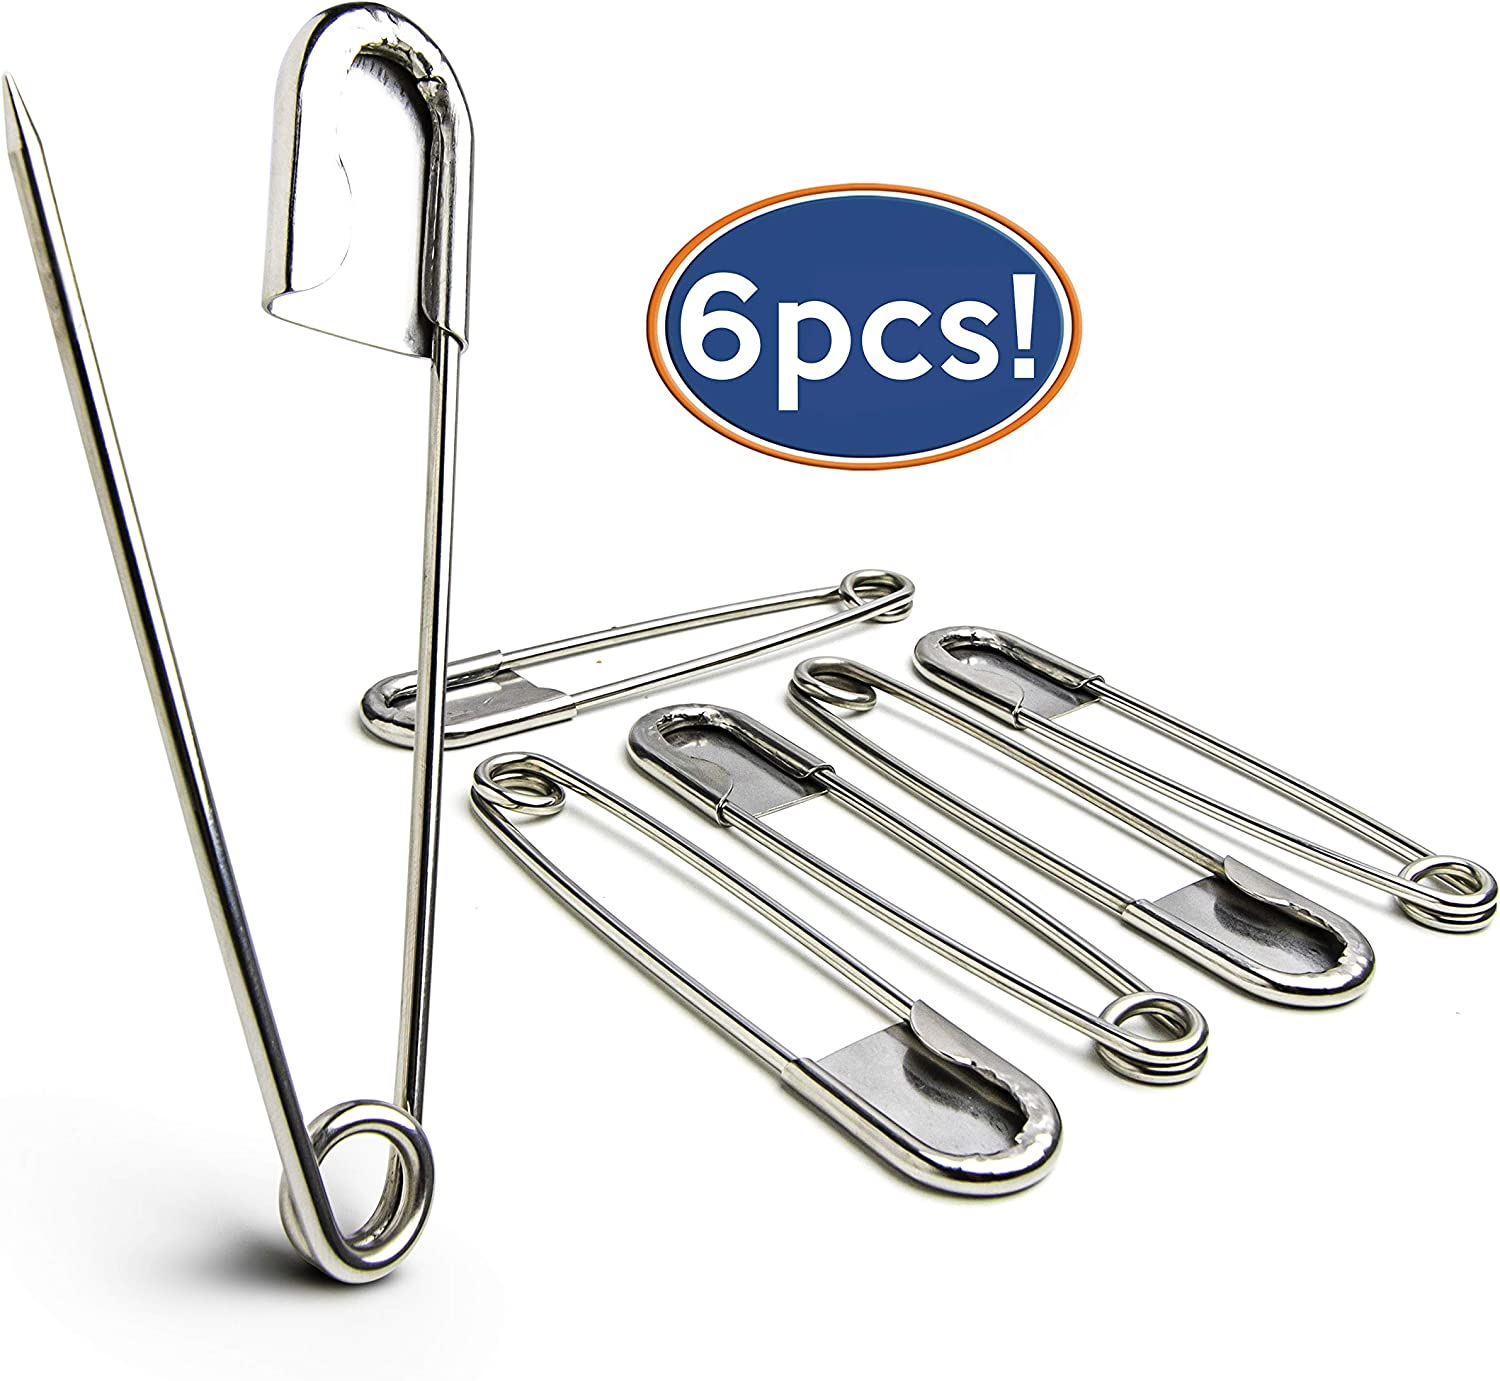 Bastex 6 Pack of 5 Inch Safety Pins. Extra Large Heavy Duty Stainless Steel Pin for Laundry, Upholstery, Horse Blanket, Quilting, Decorative Fashion and More. Bulk Giant Jumbo Strong Pins